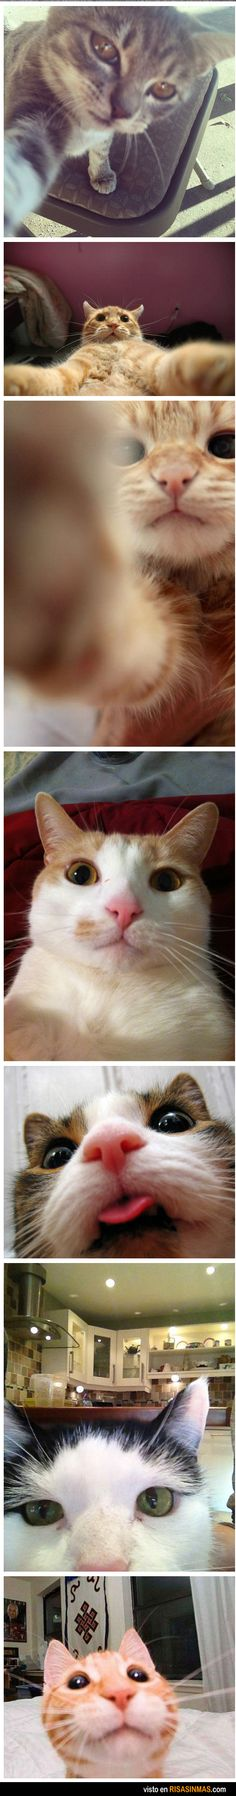 Cat selfies   ...........click here to find out more     http://googydog.com